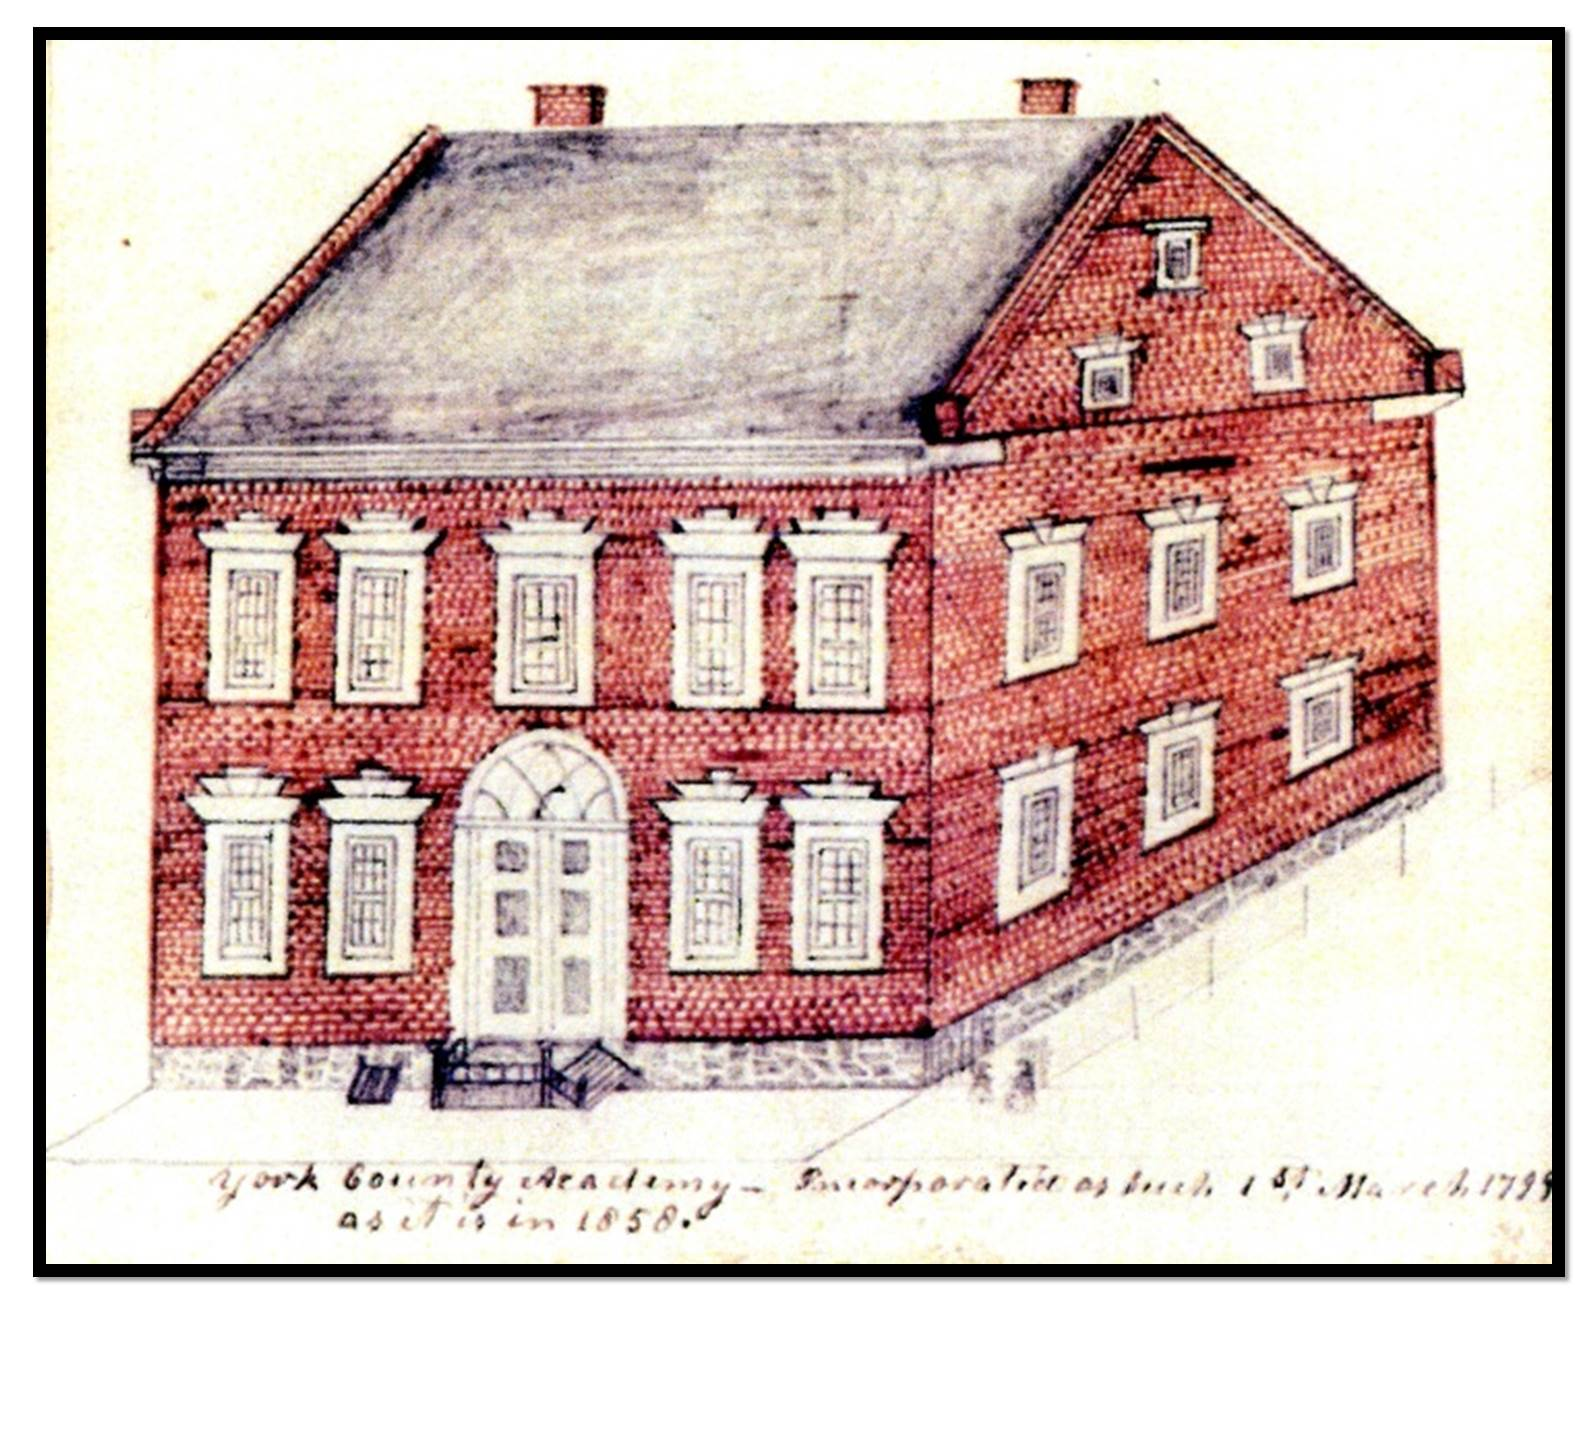 Sketch of original York County Academy